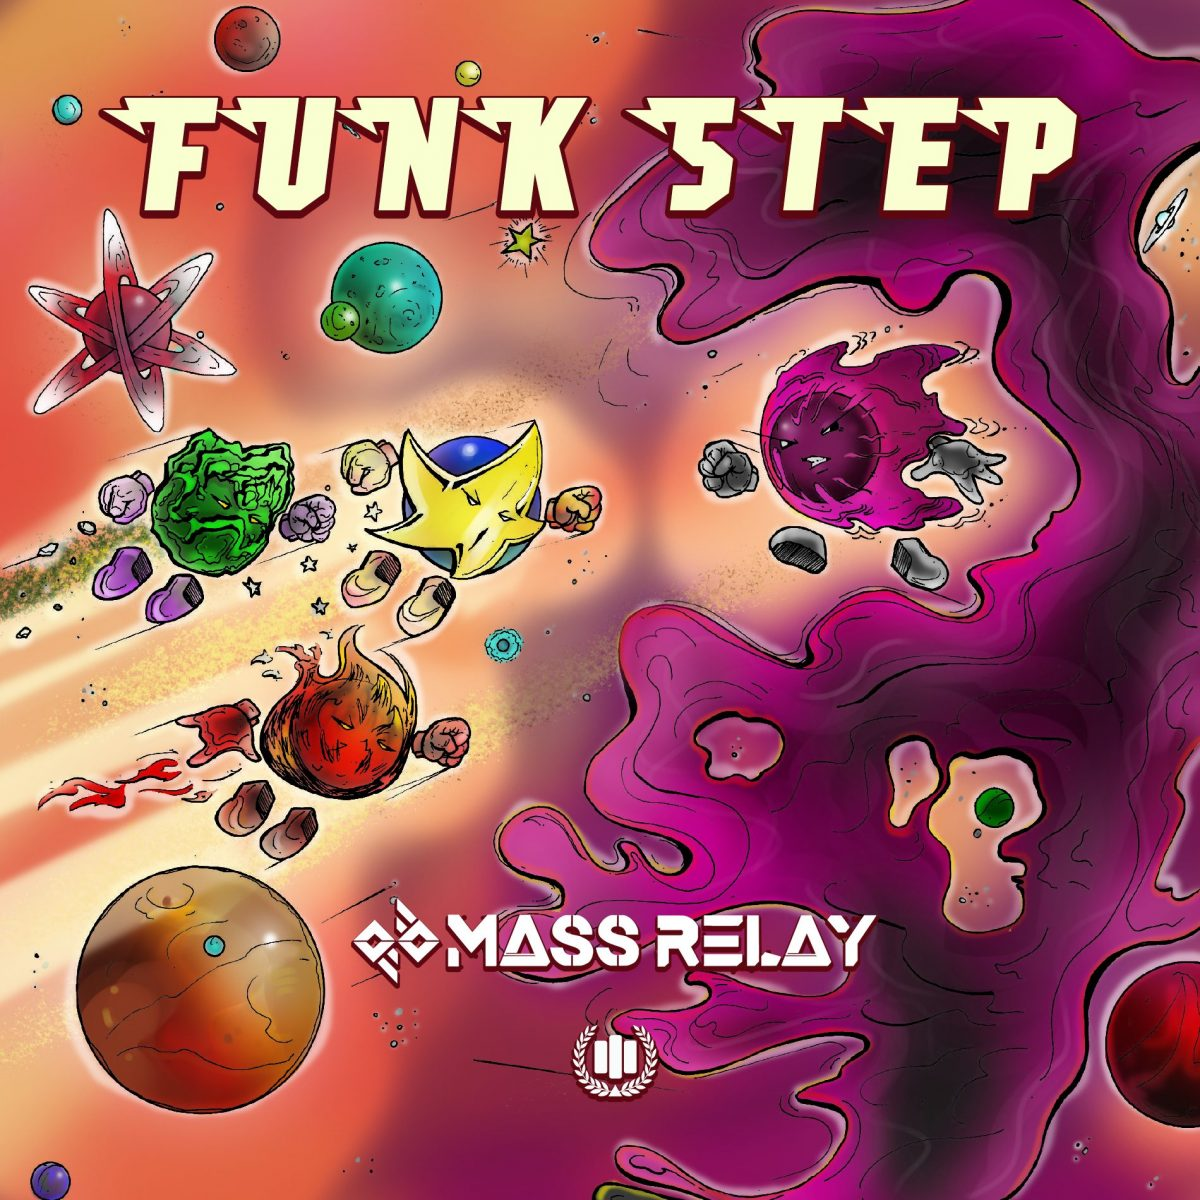 Mass Relay Releases FUNKSTEP (EP) on MHSM Records